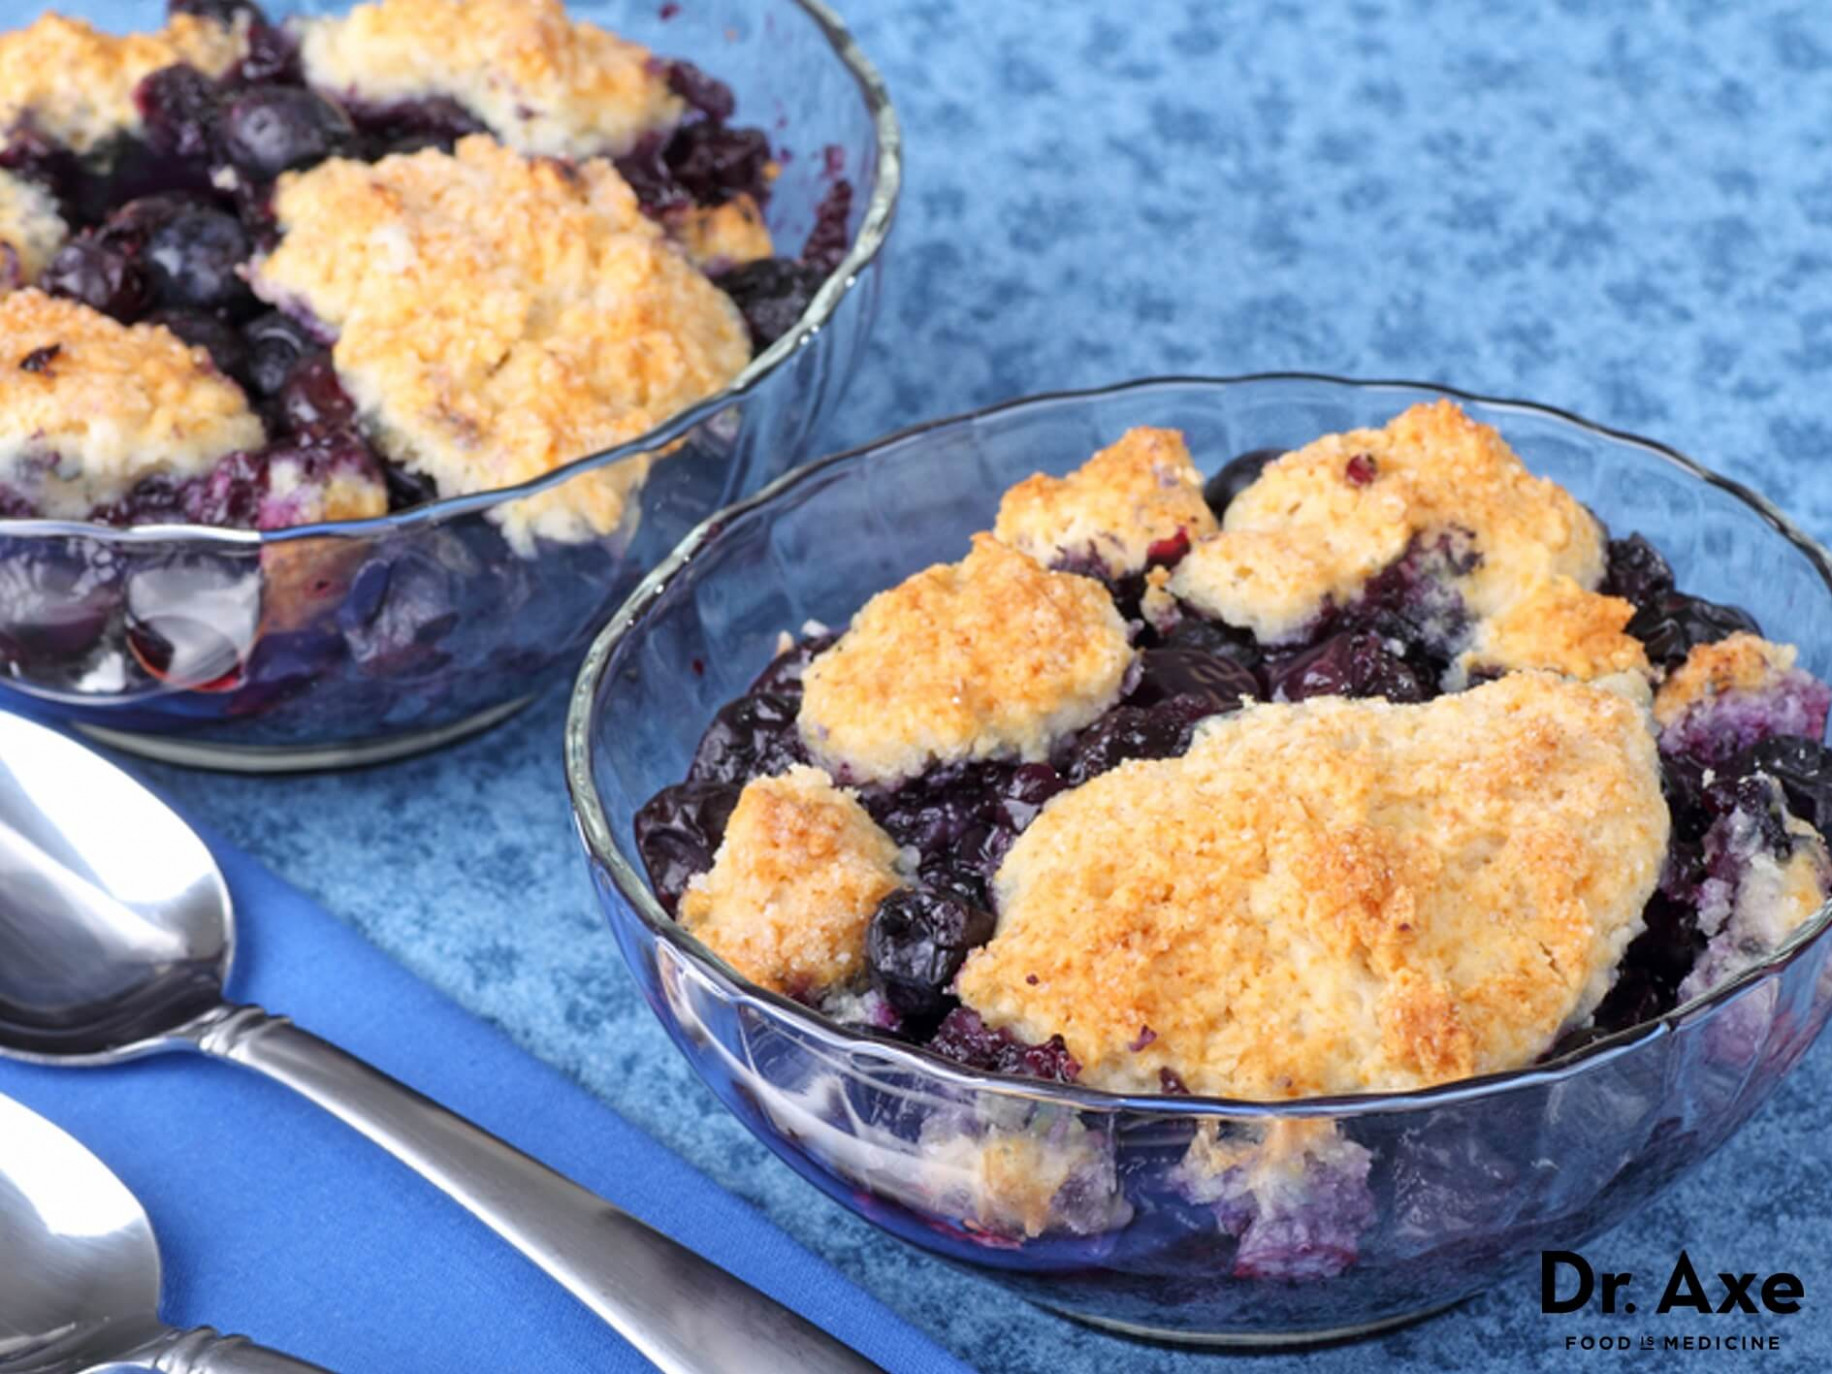 Healthy Blueberry Cobbler Recipe - Dr